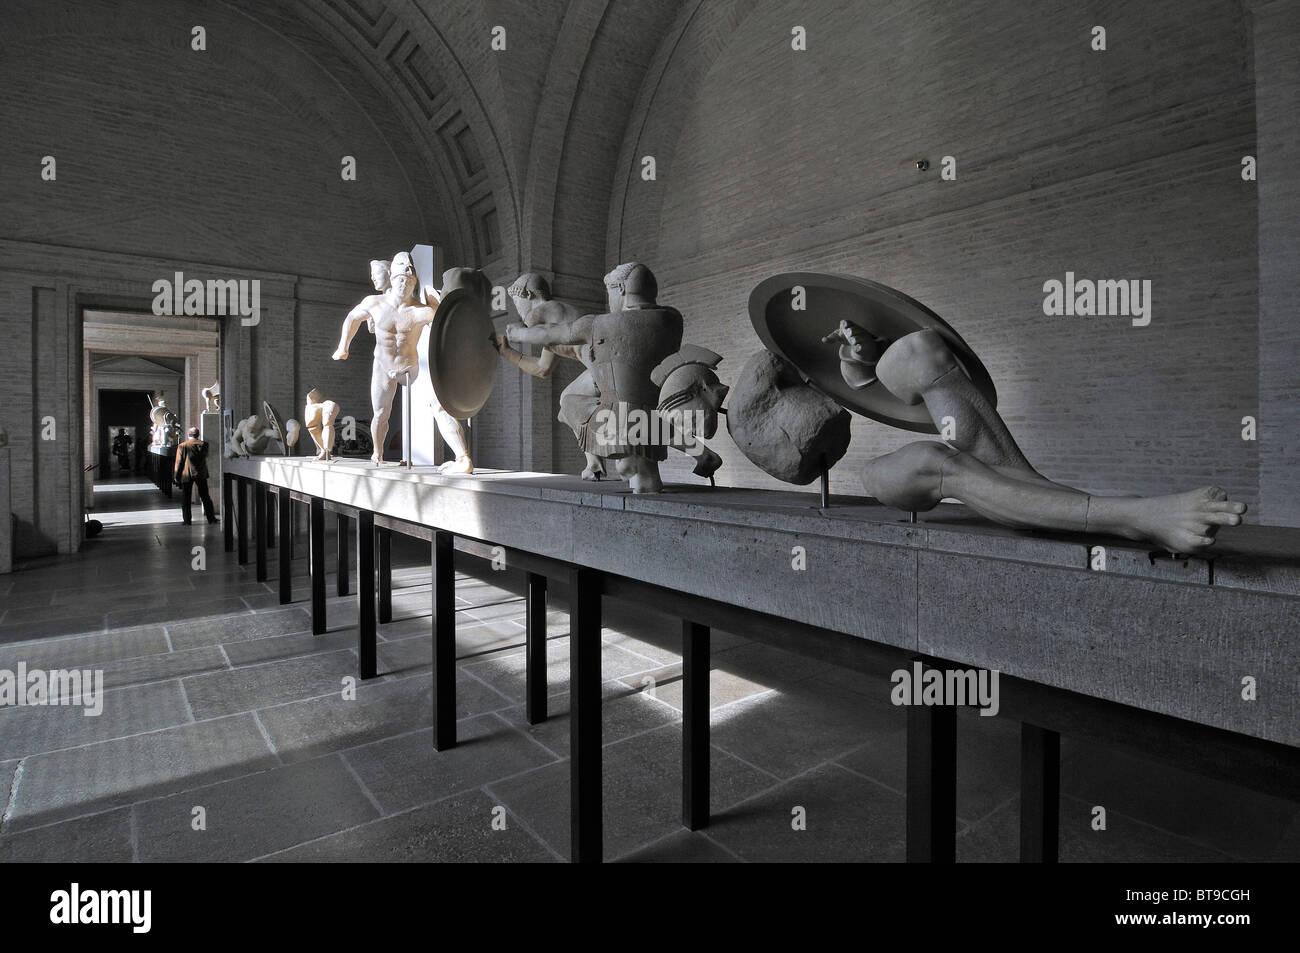 East pediment of the Temple of Aegina, circa 500 BC., Glyptothek museum, Munich, Bavaria, Germany, Europe - Stock Image